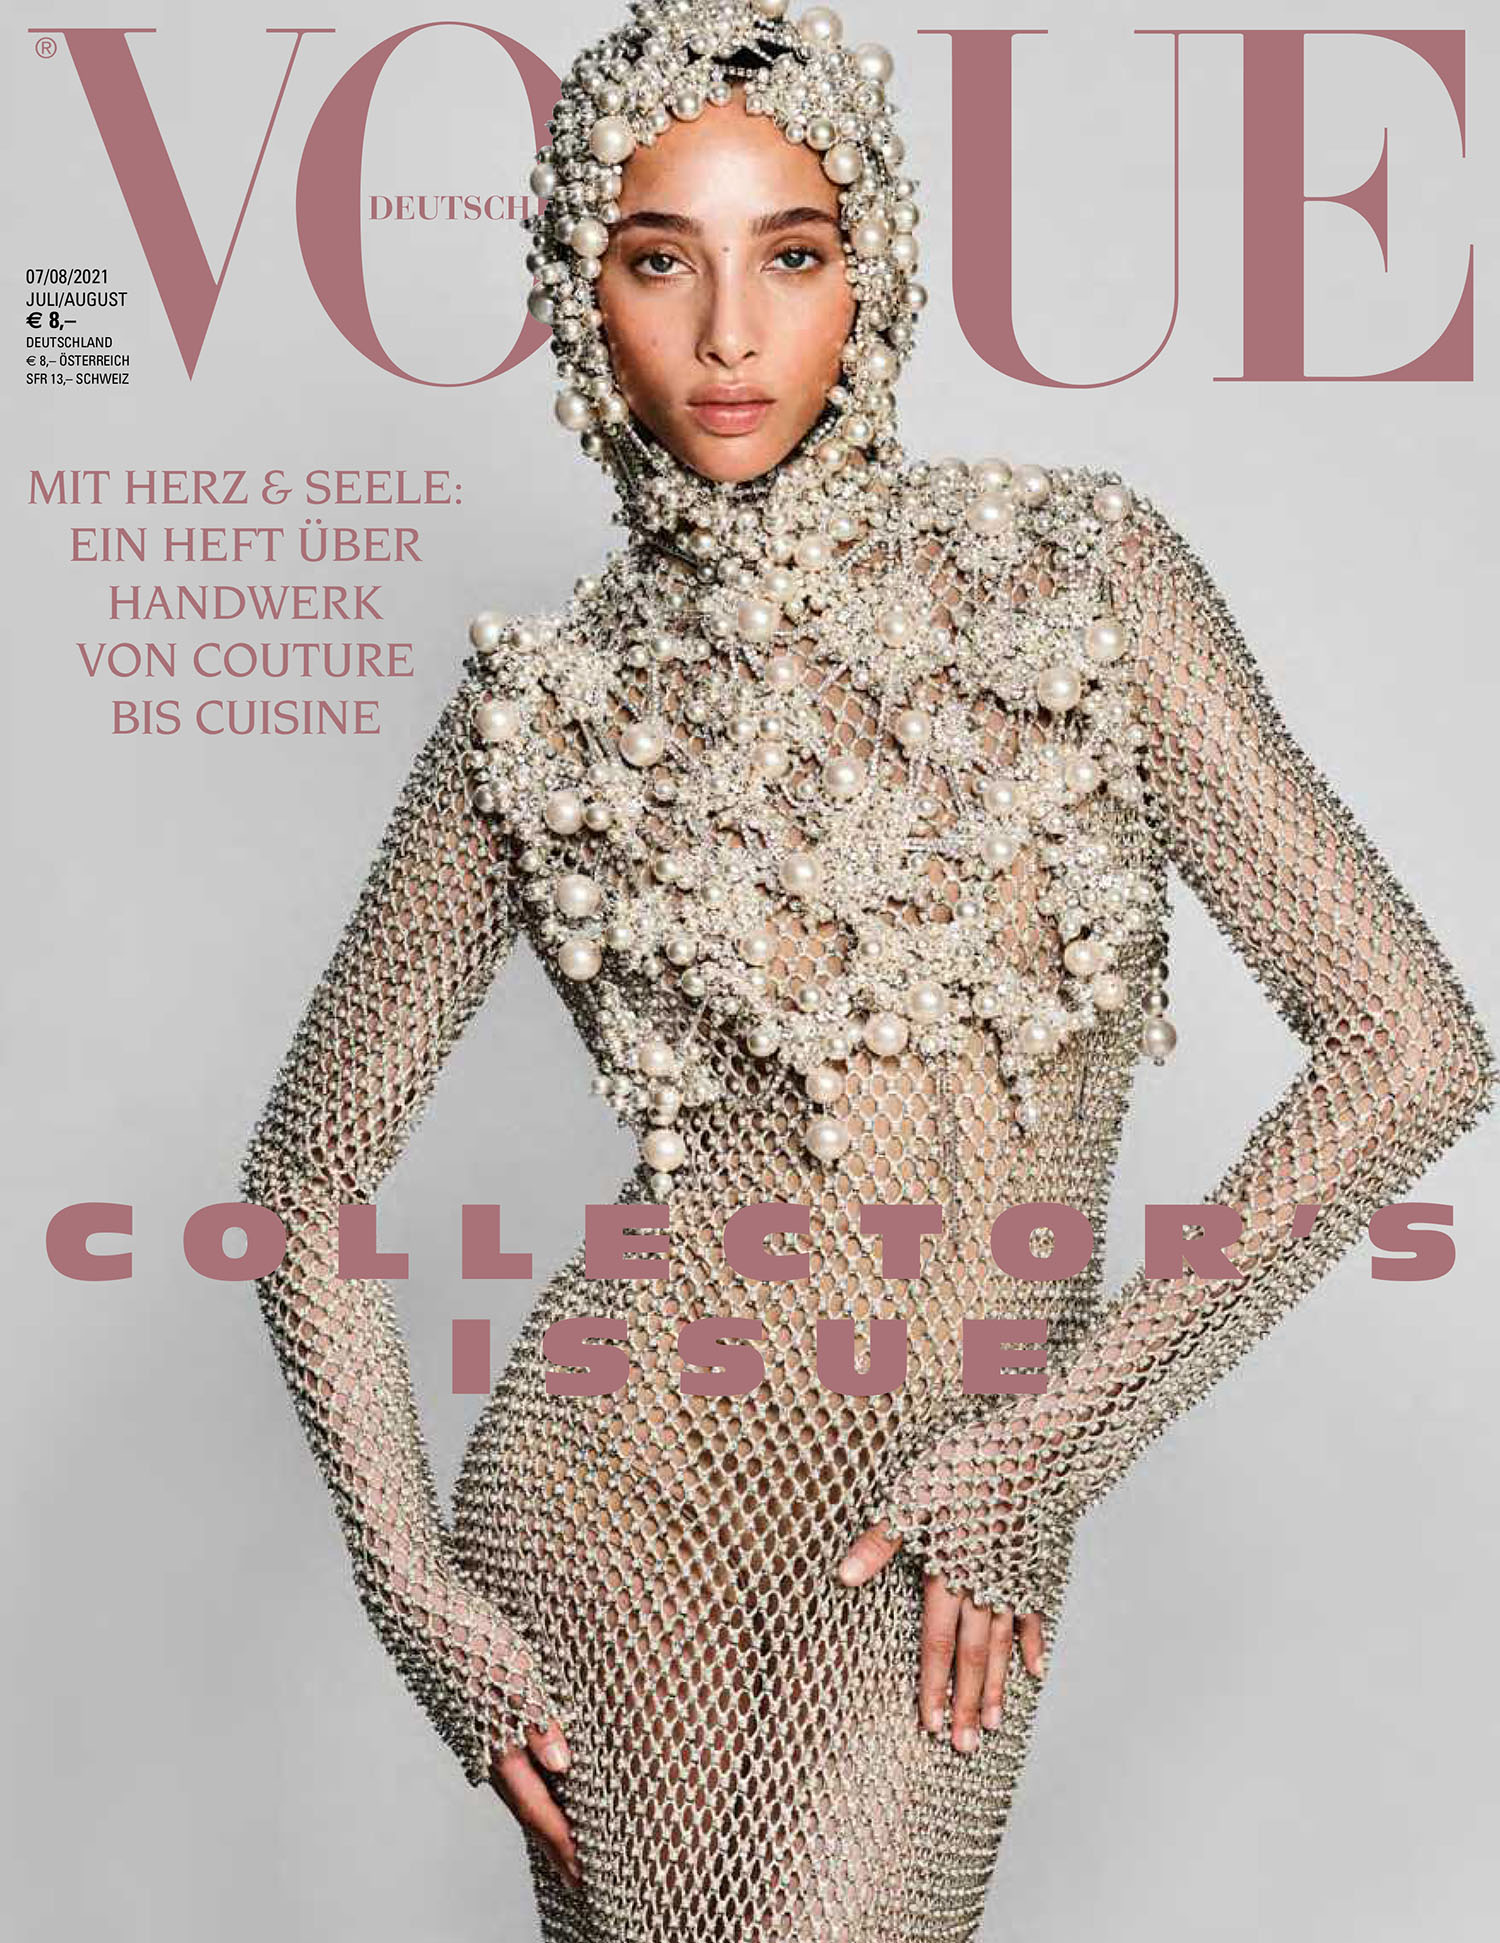 Yasmin Wijnaldum covers Vogue Germany July August 2021 by Chris Colls